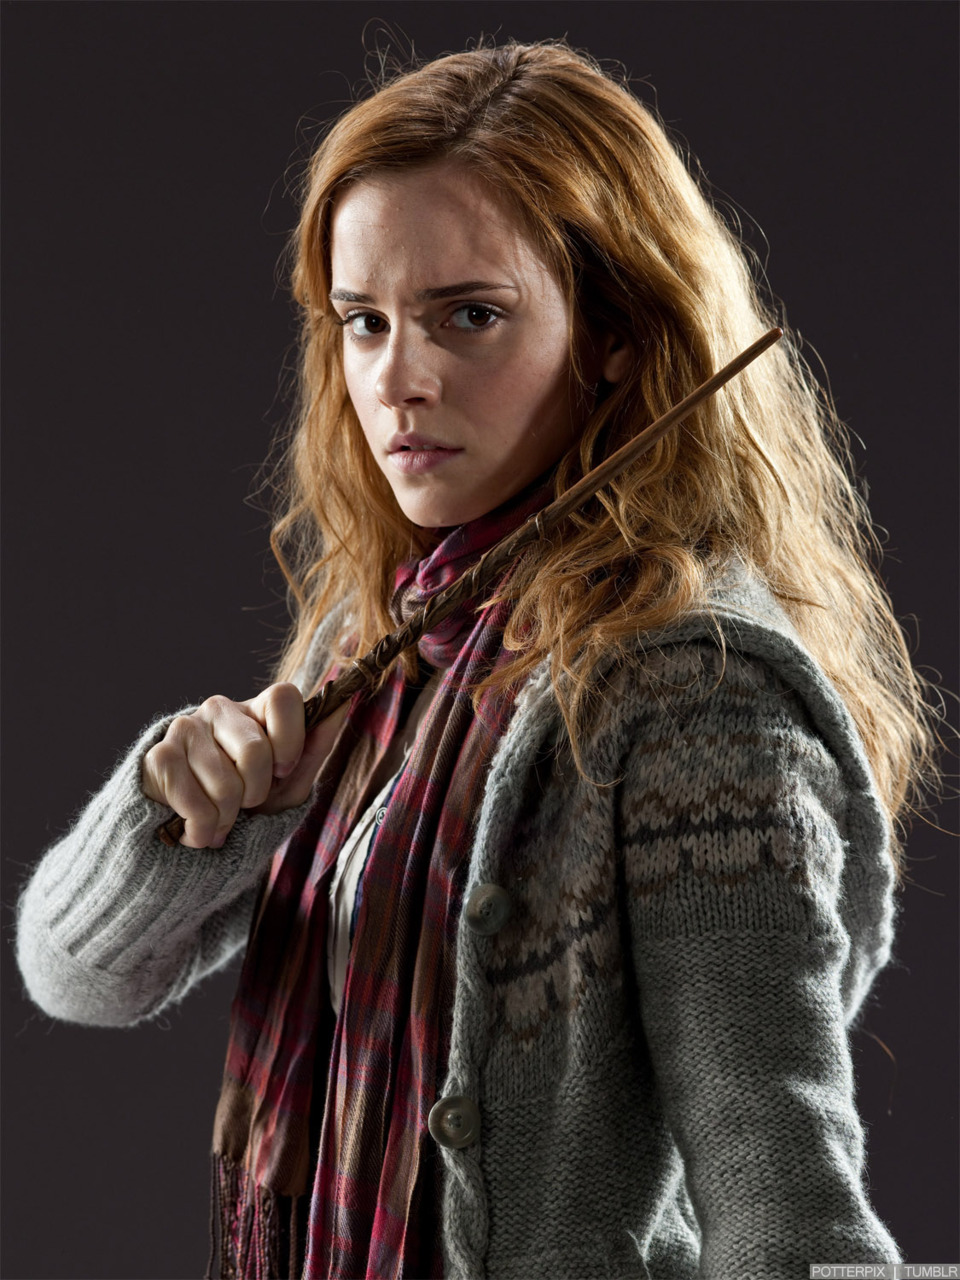 Hermione granger hermione granger photo 26743720 fanpop for Static wand